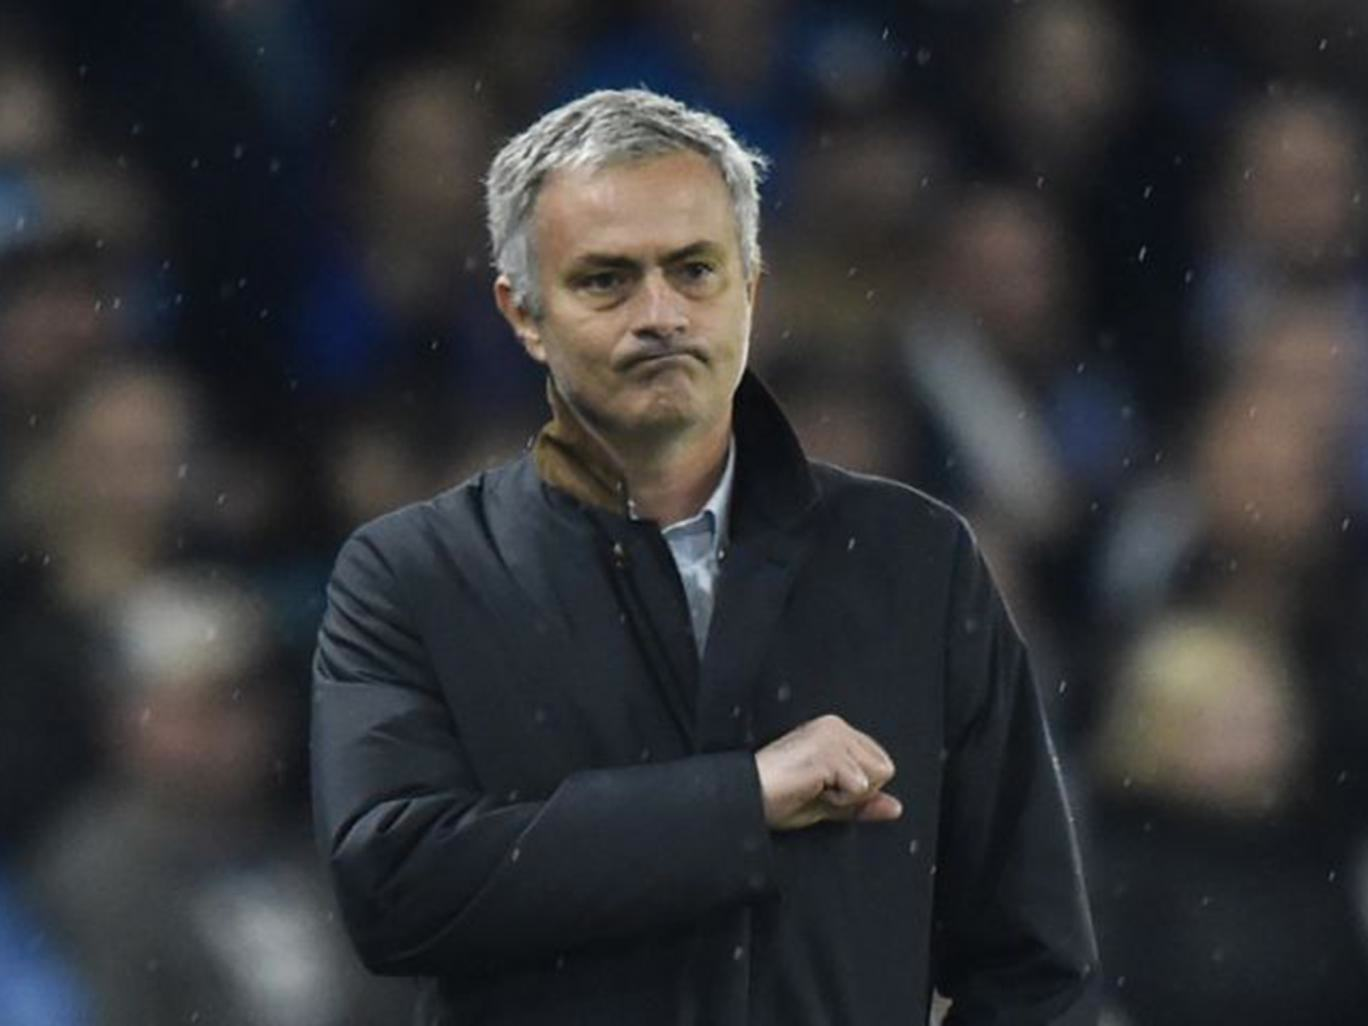 UNILAD Mourinho51023 Jose Mourinho Is Chelseas Special One, And The Fans Know It